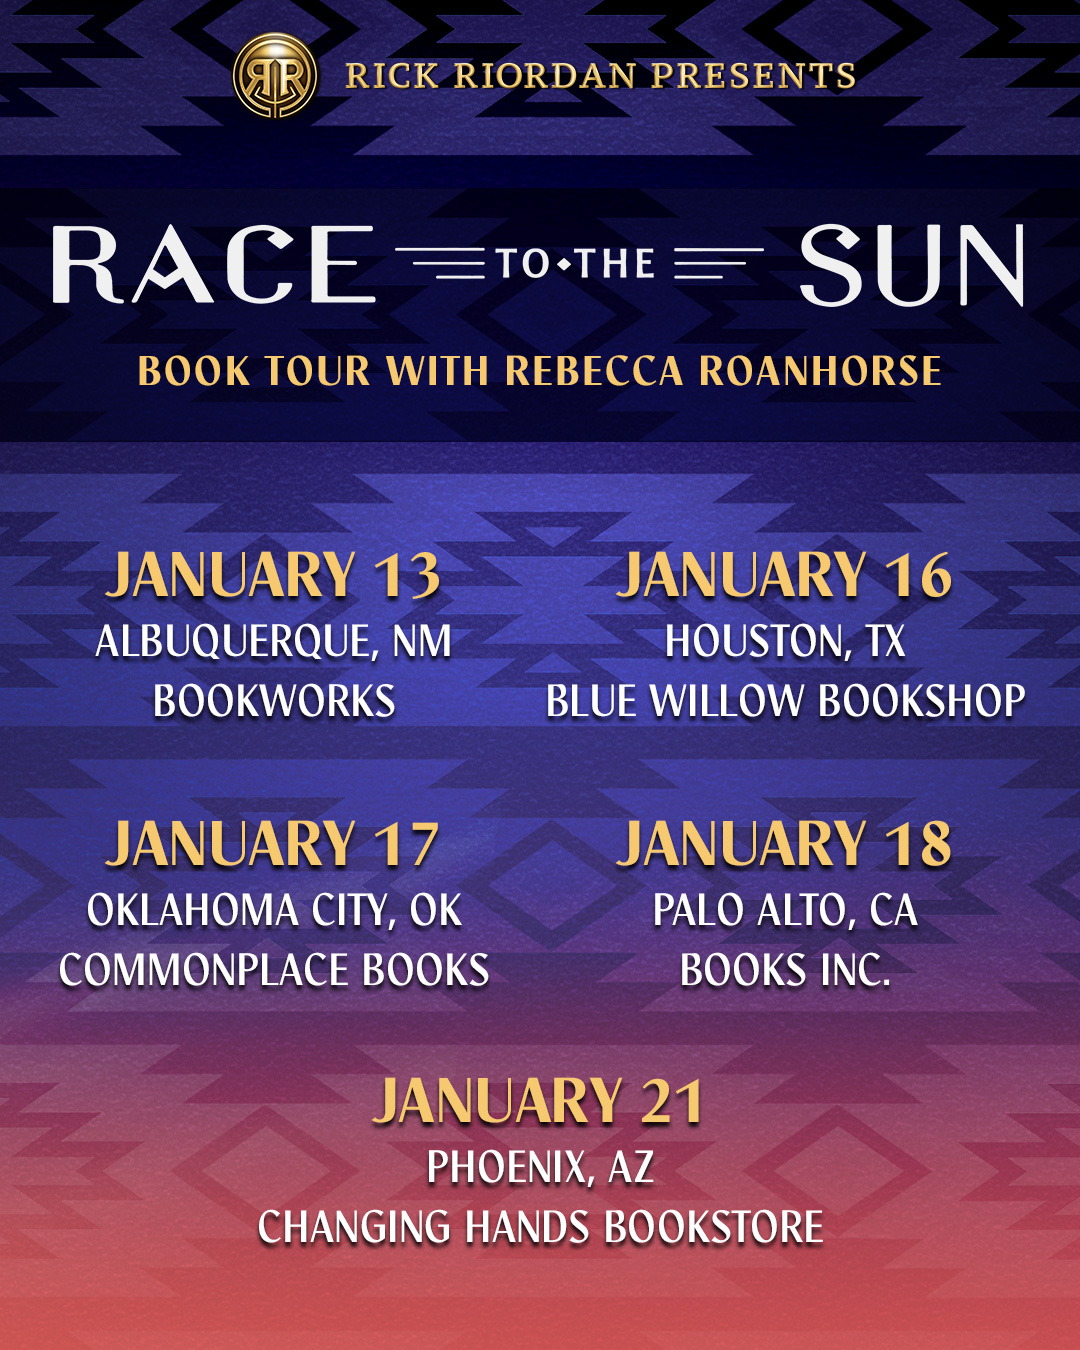 racetothesun_tourgraphic2002_FINAL